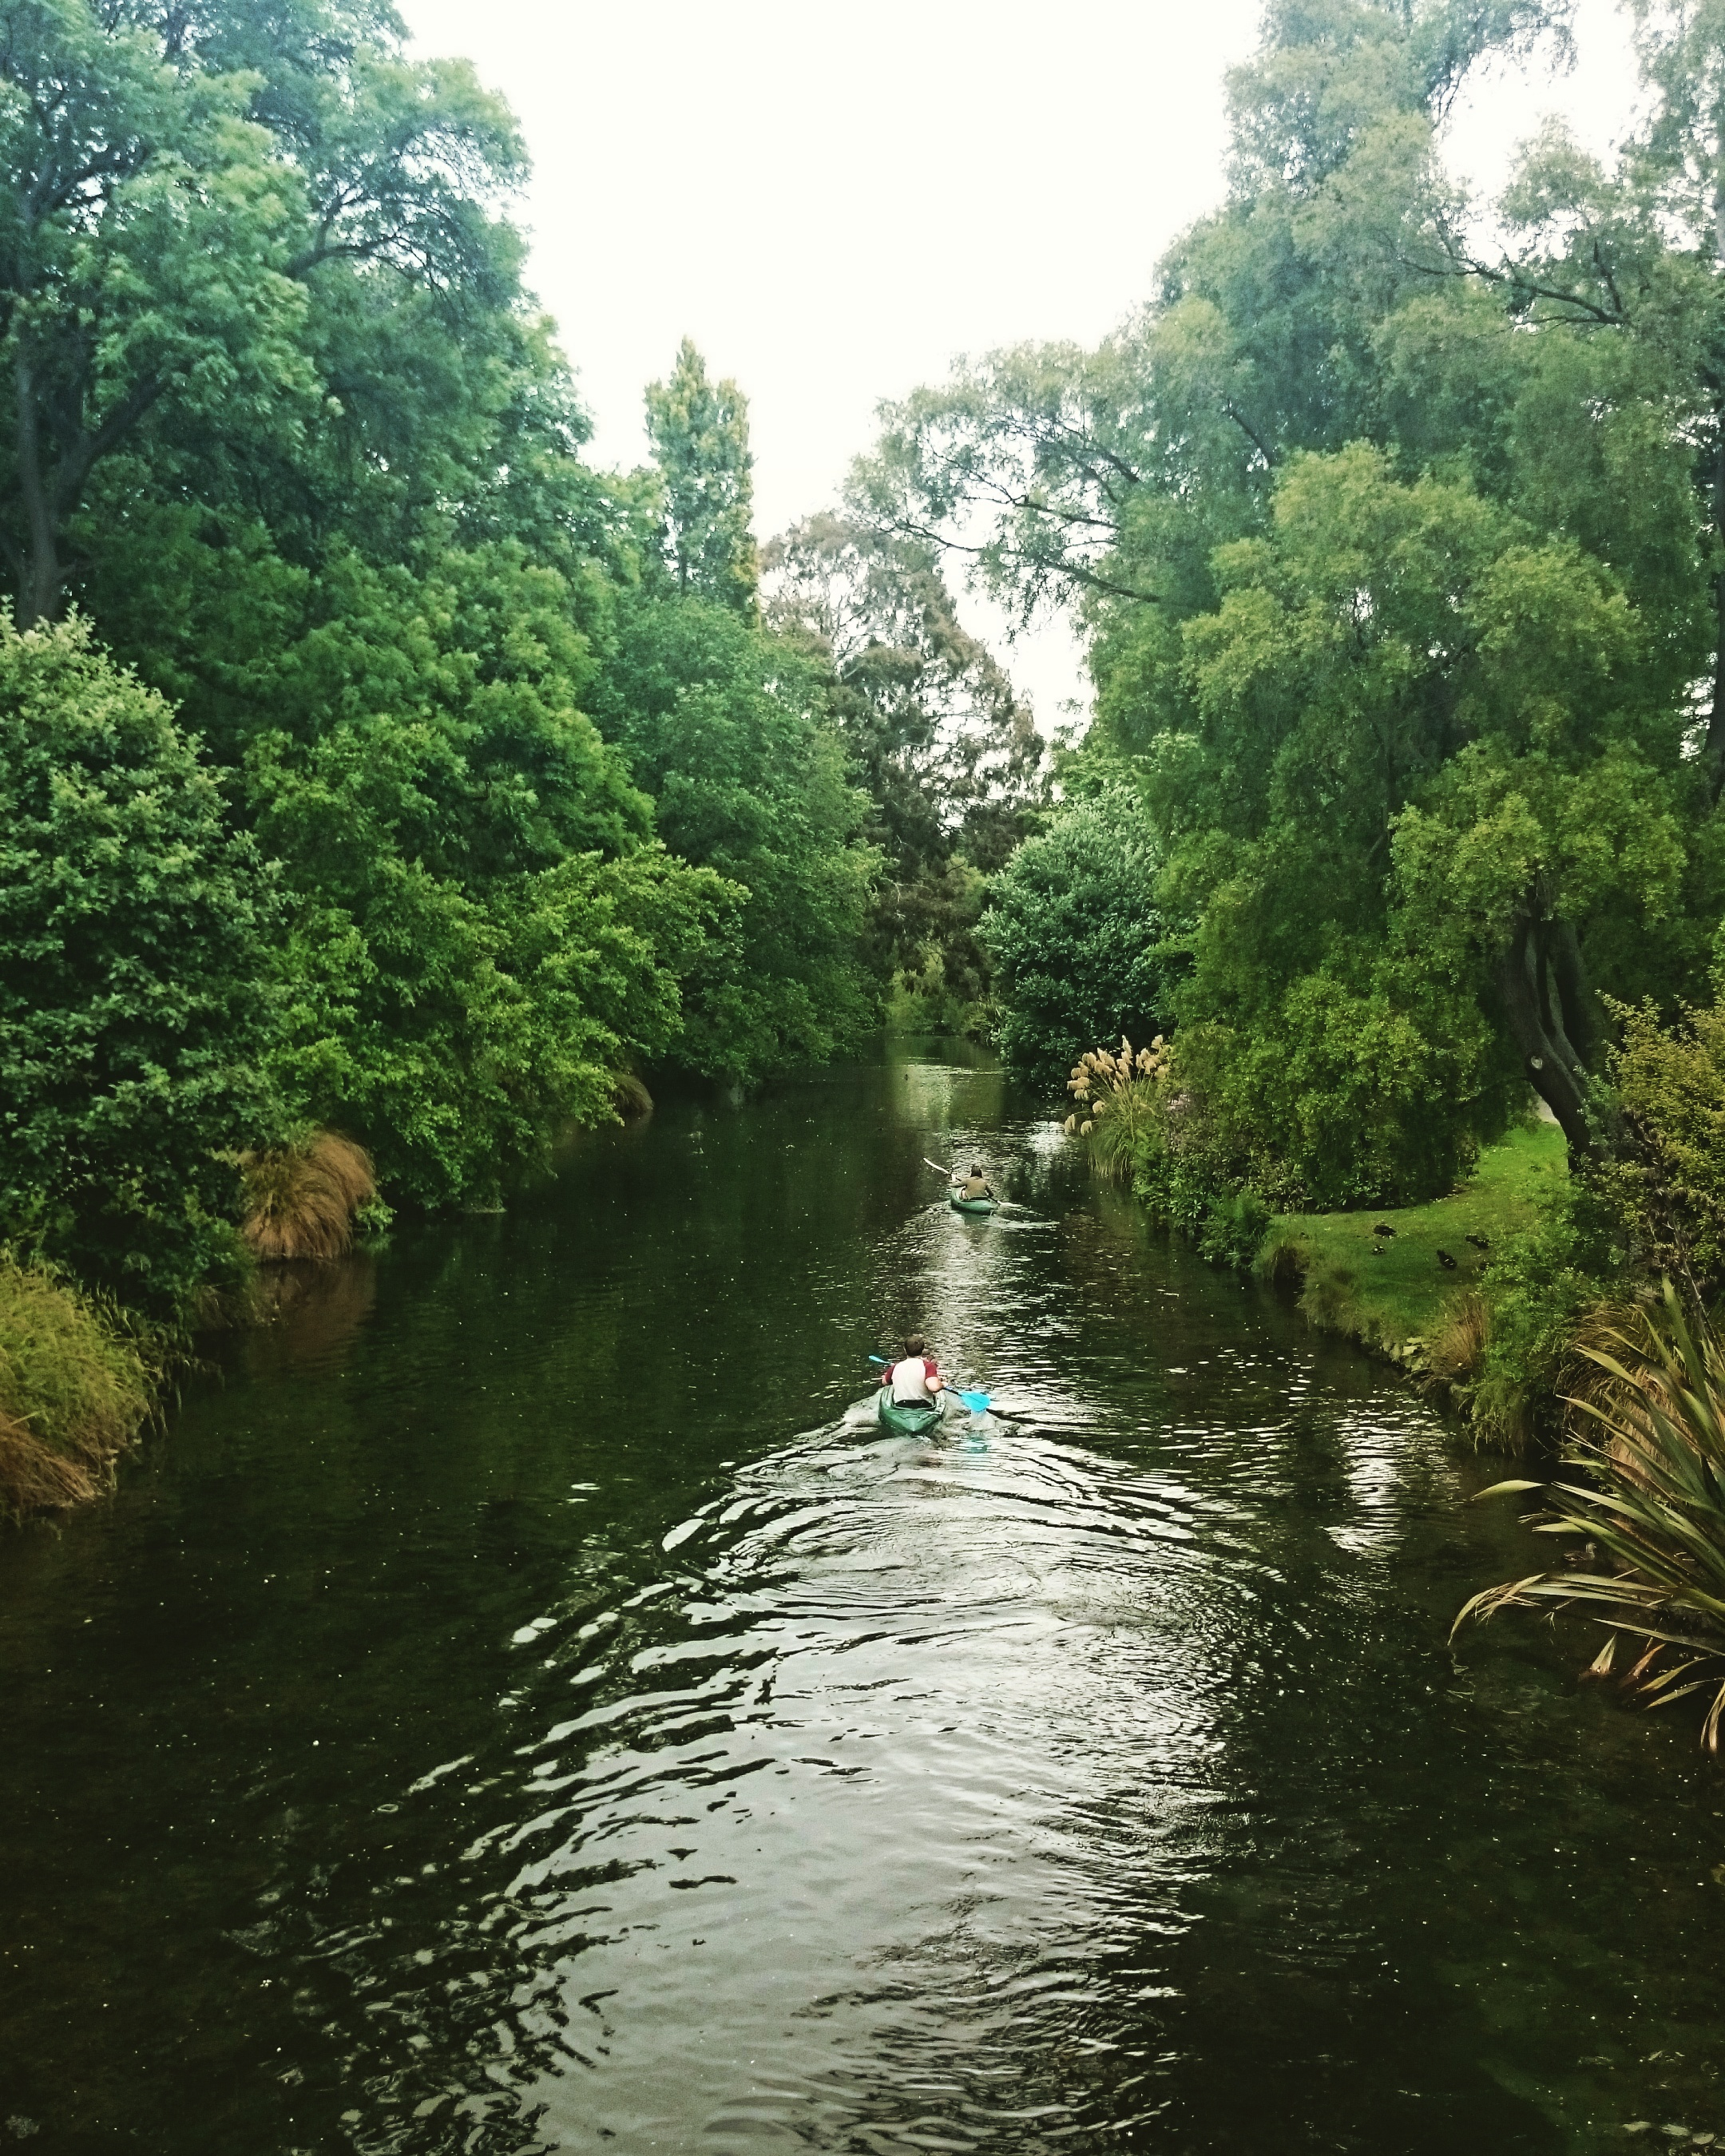 Kayaking down the Avon River